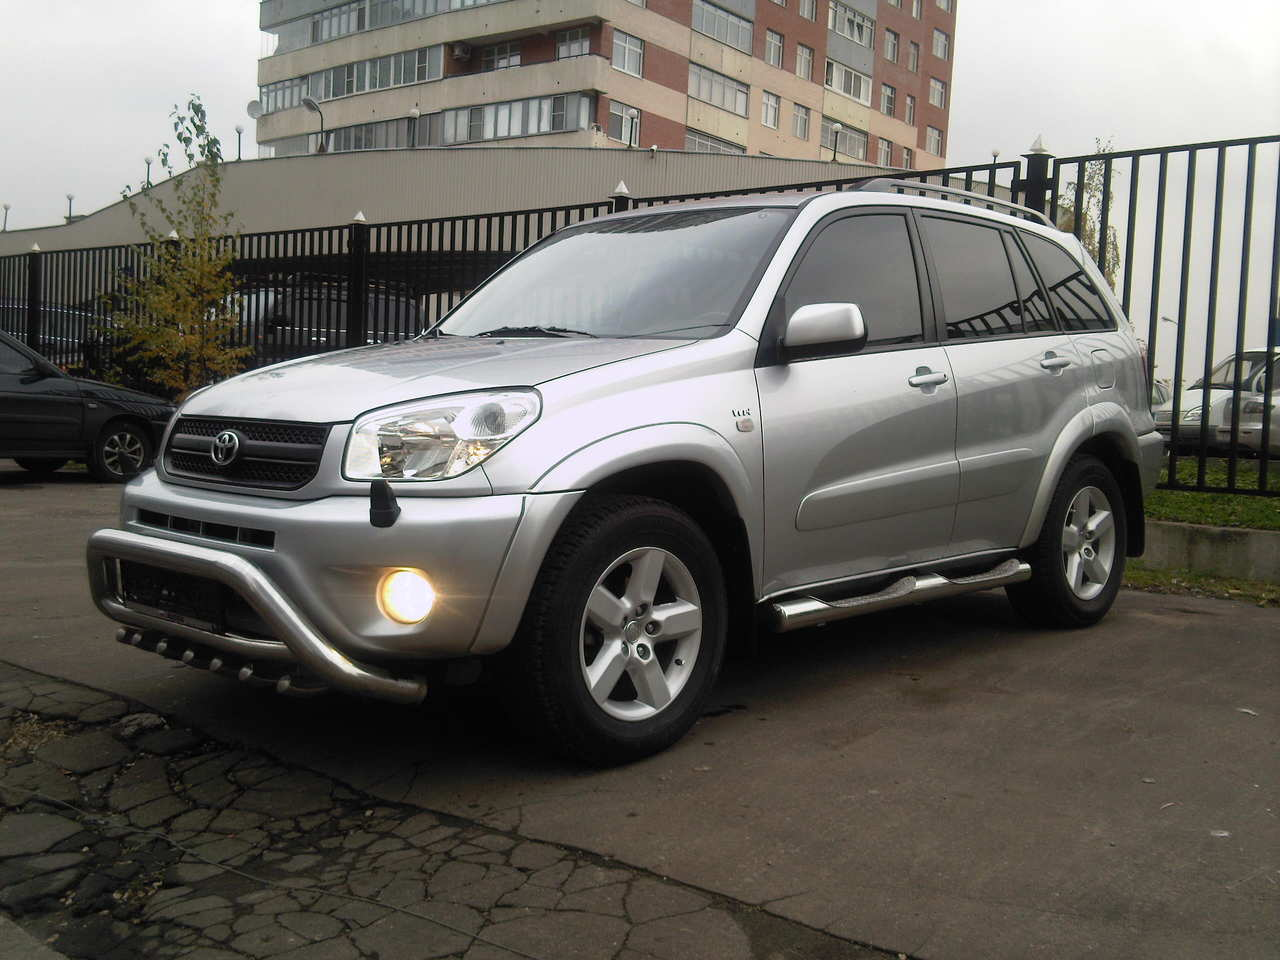 Used 2004 Toyota Rav4 Photos  2000cc   Gasoline  Automatic